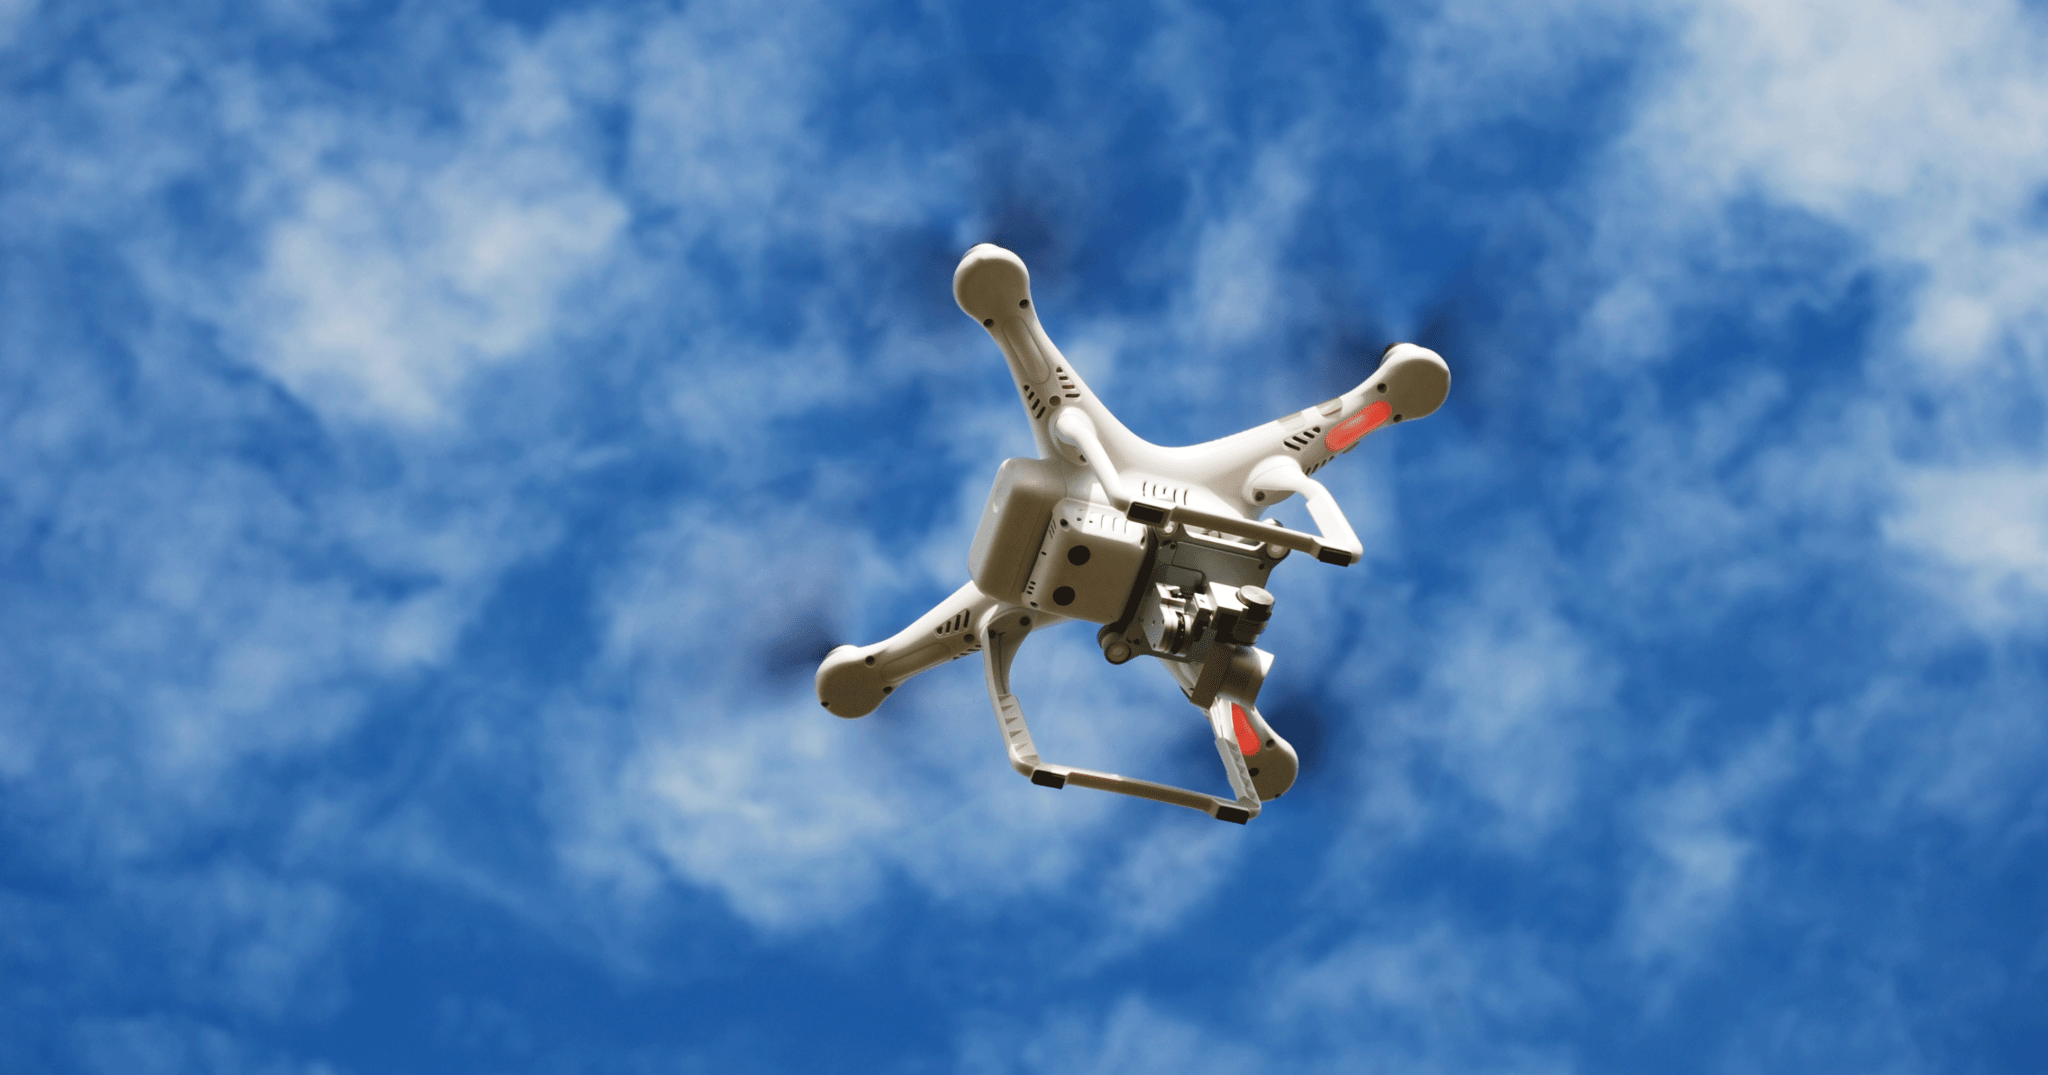 groupe-bsl-securite-entreprise-de-gardiennage-ile-de-france-drones-de-securite